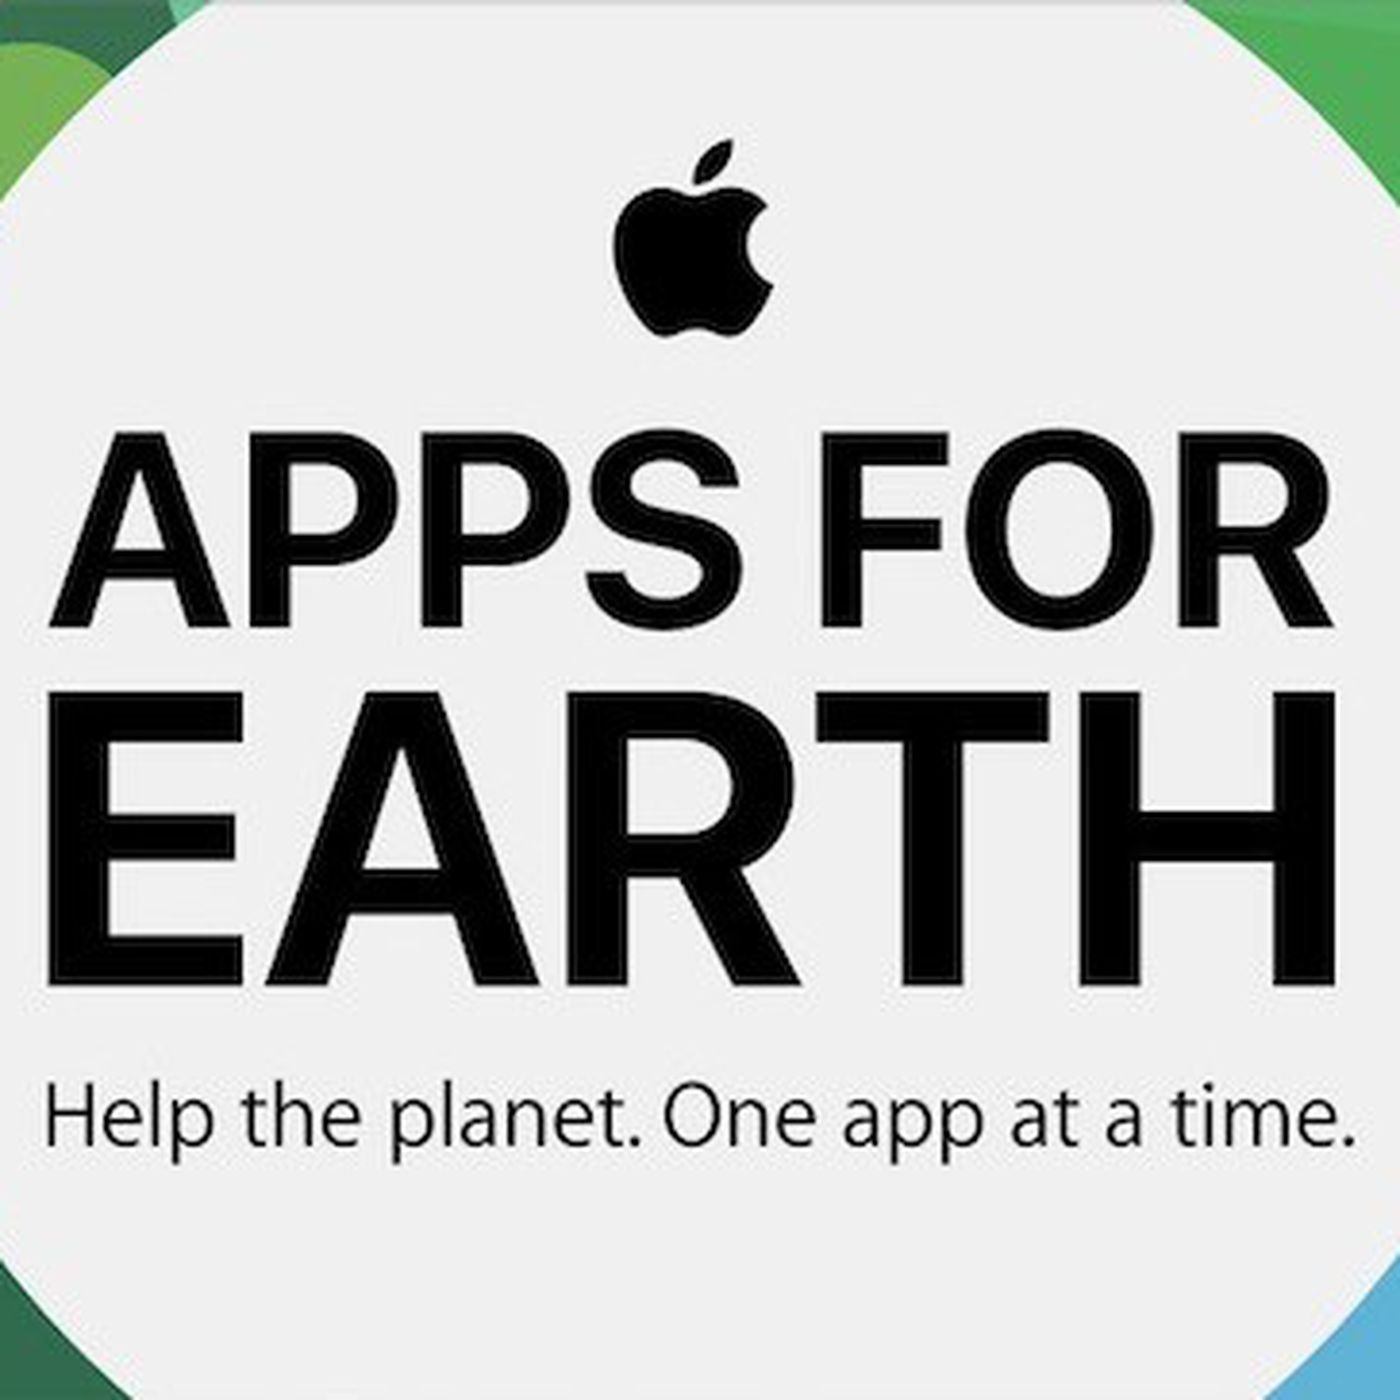 Apple's Apps for Earth will send proceeds from 27 apps to the WWF